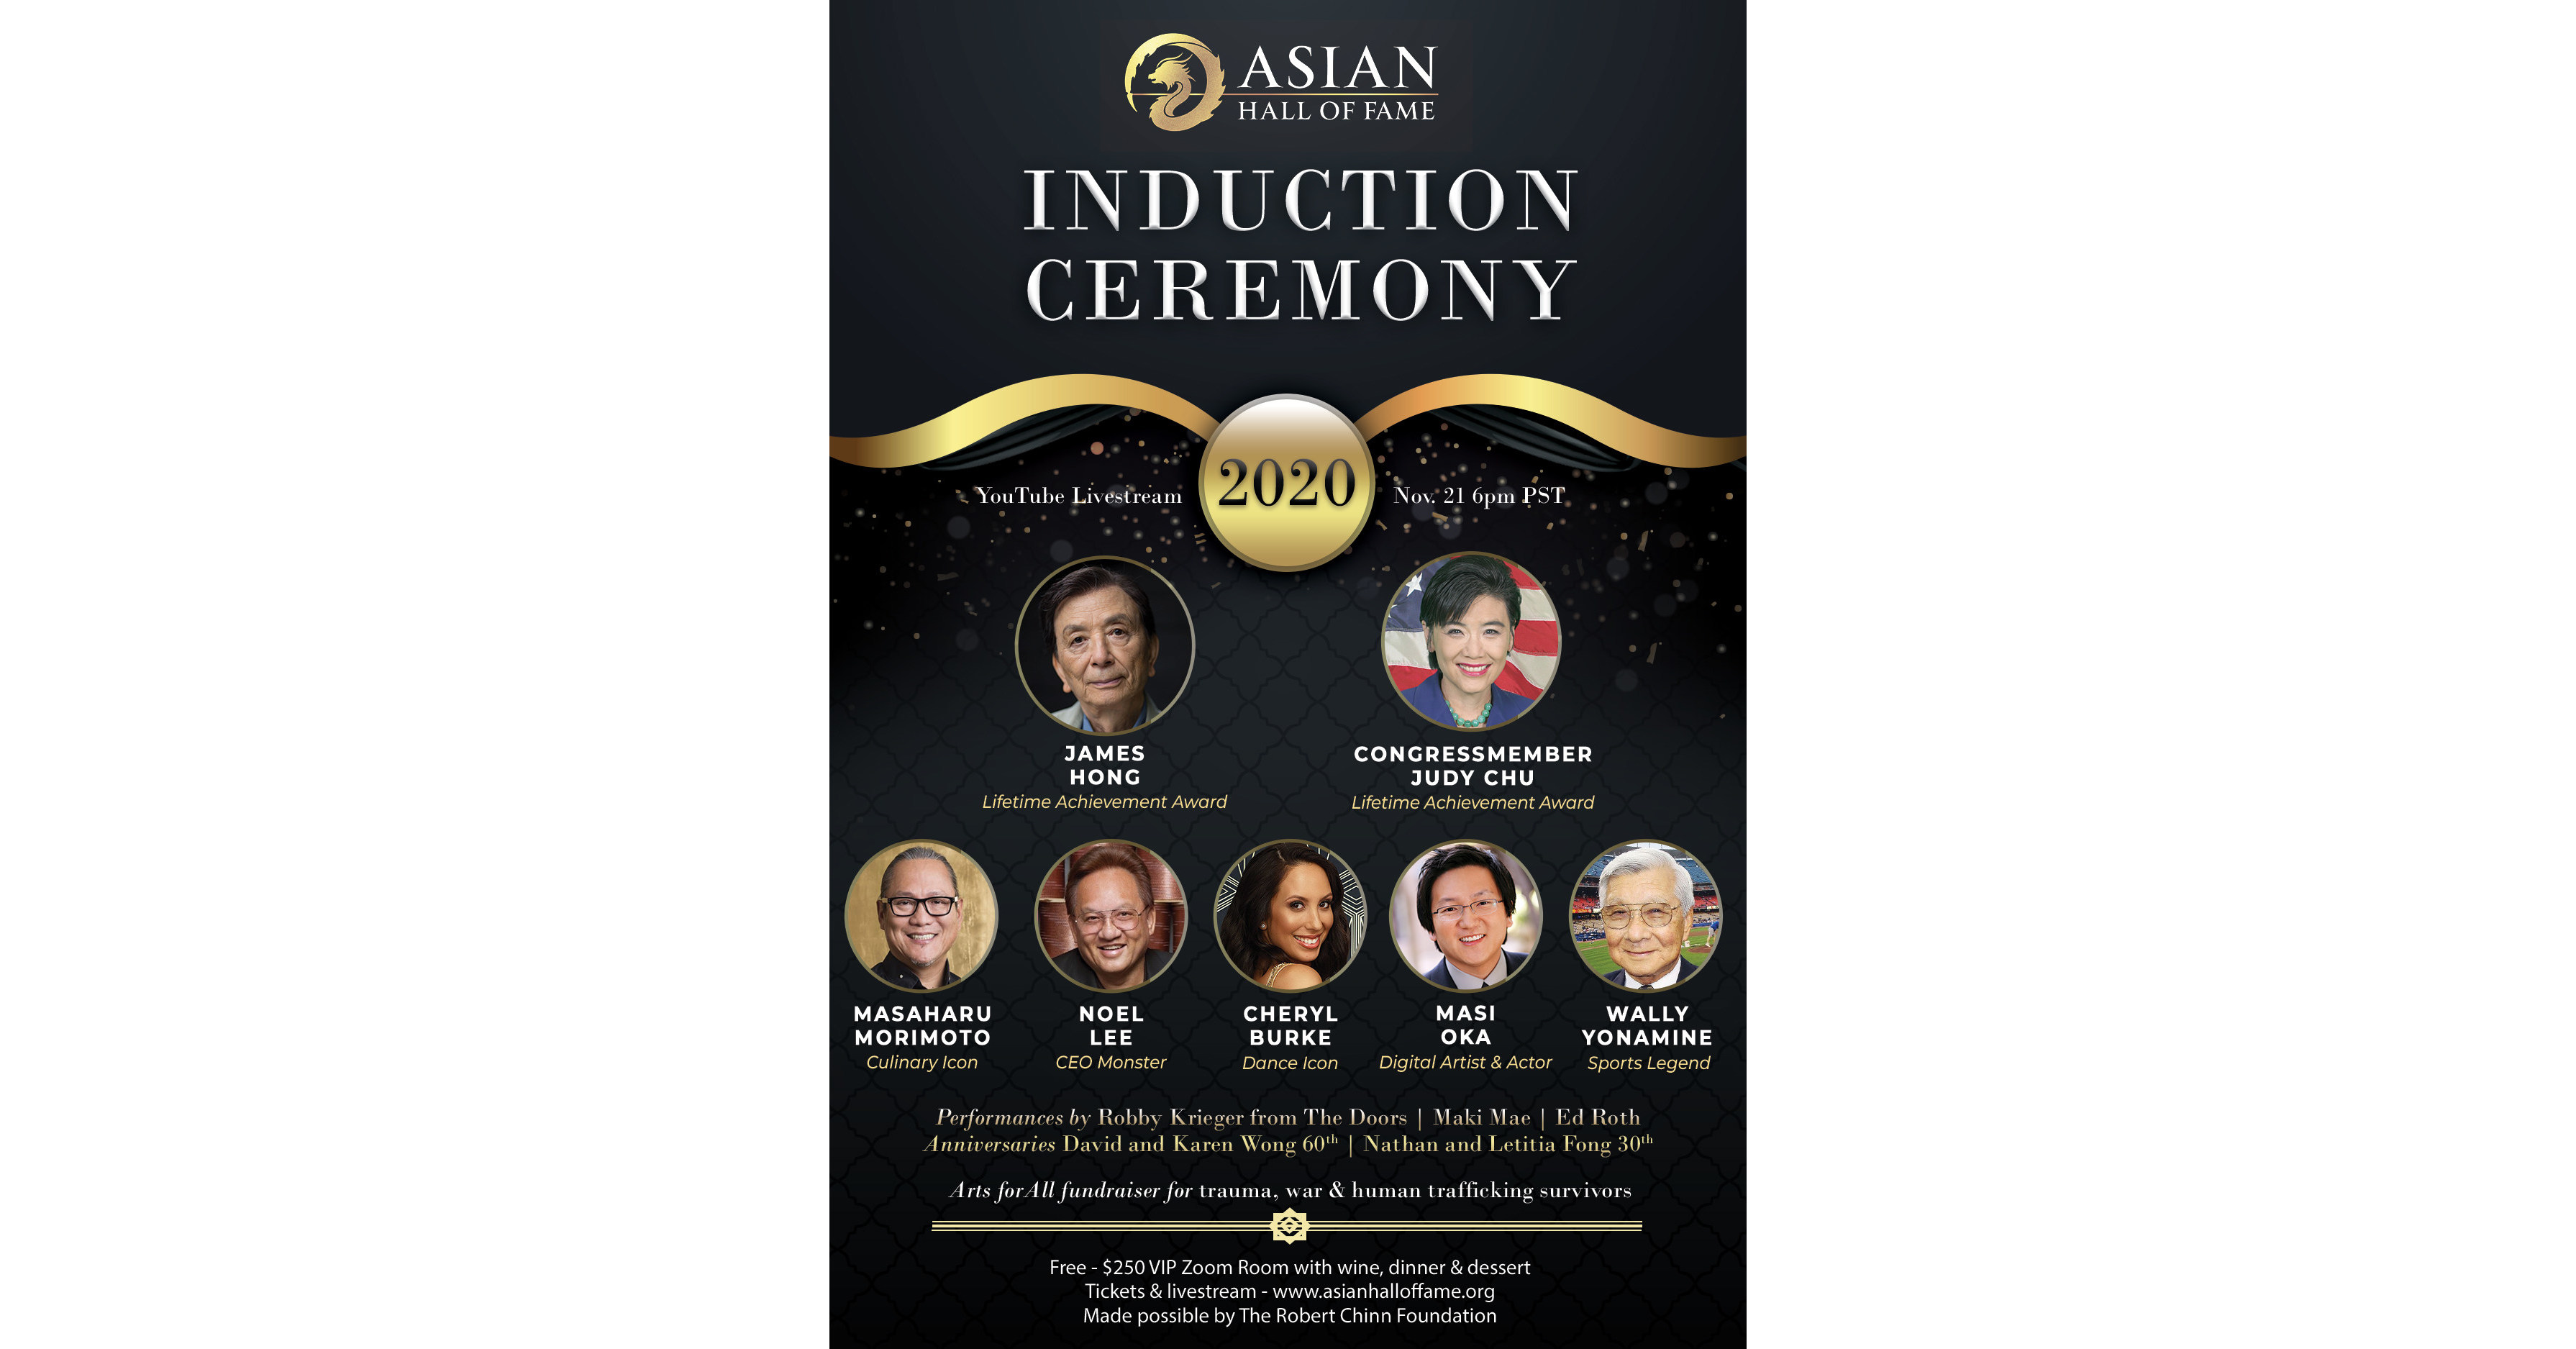 www.prnewswire.com: Asian Hall of Fame Class of 2020 spans decades of leadership